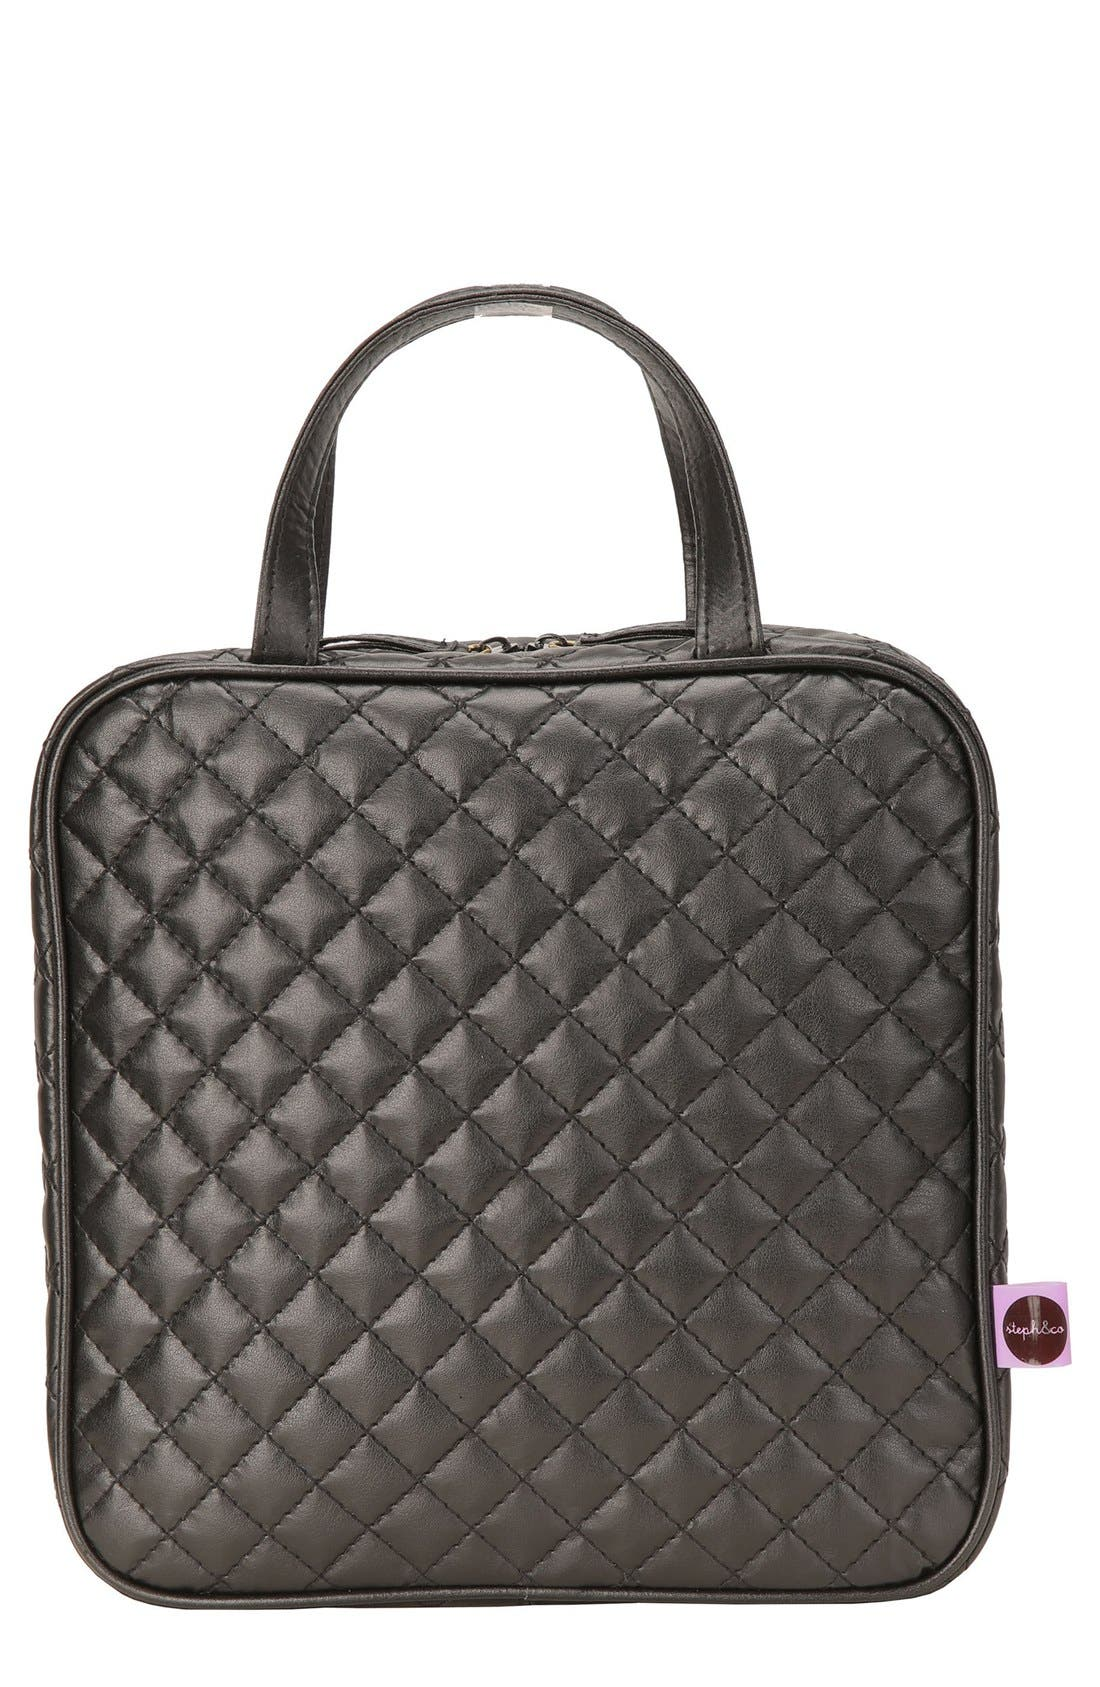 steph&co. 'Marissa' Black Quilted Cosmetics Case (Limited Edition) (Nordstrom Exclusive)